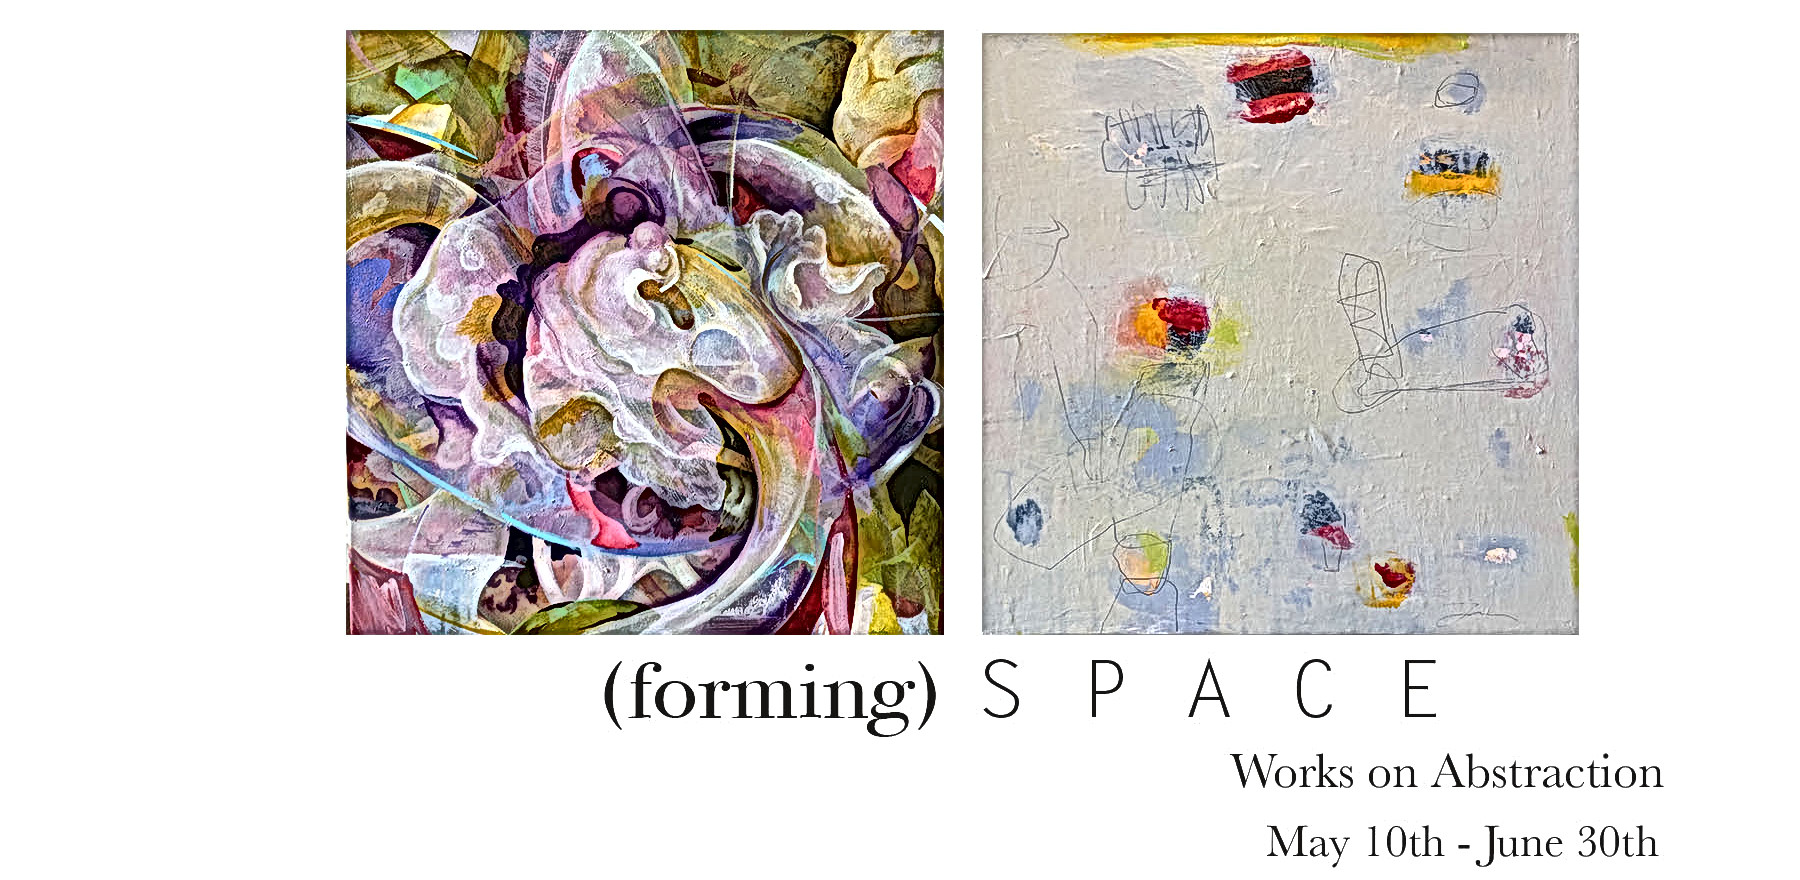 (forming) SPACE